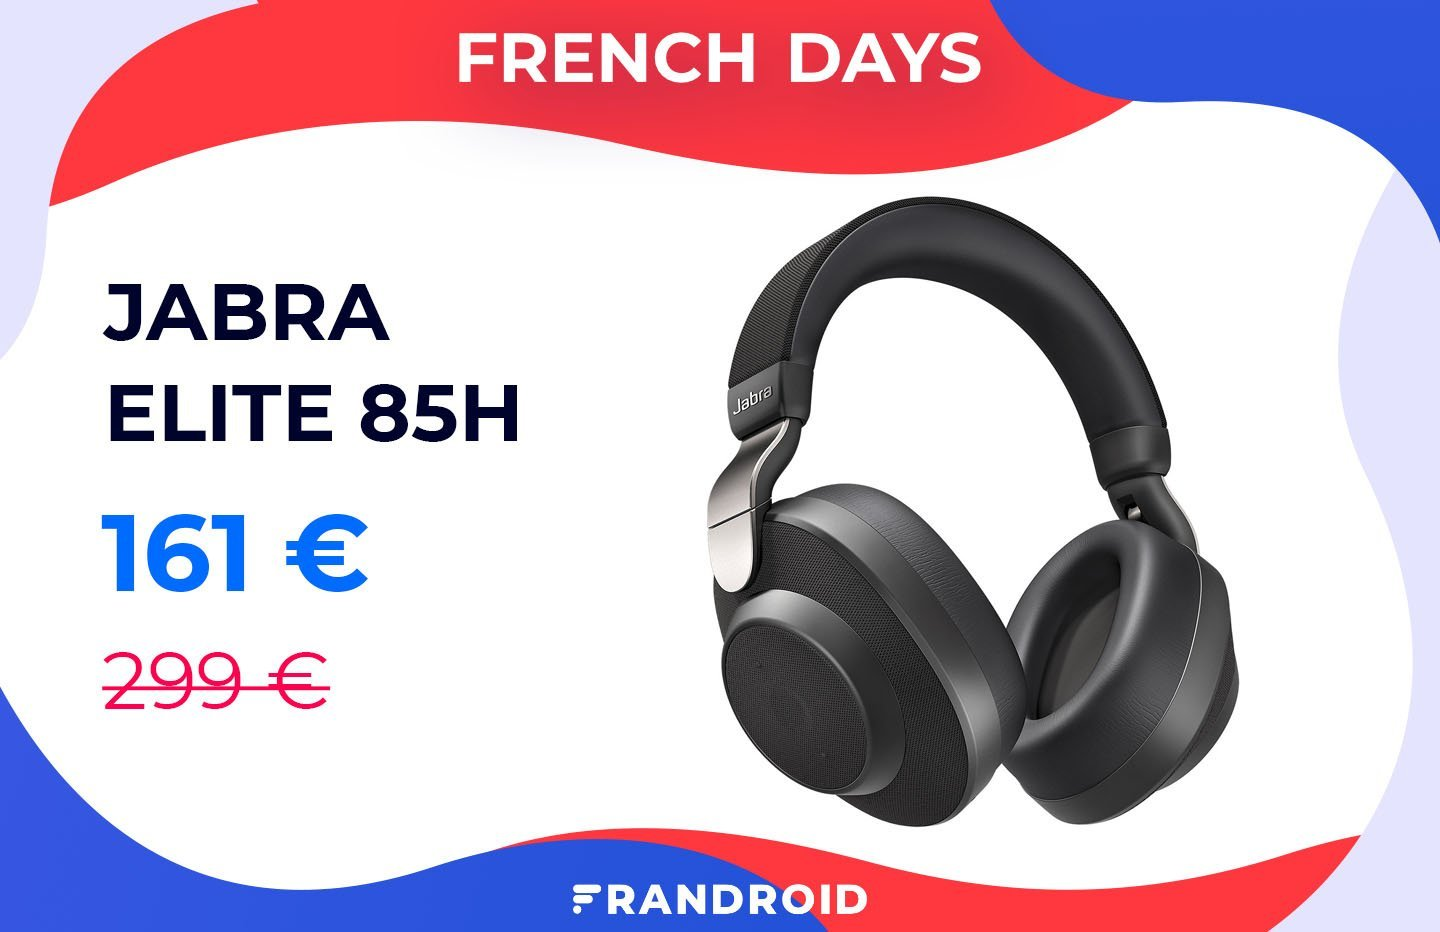 Jabra Elite 85h : un casque à réduction de bruit ENFIN abordable lors des French Days